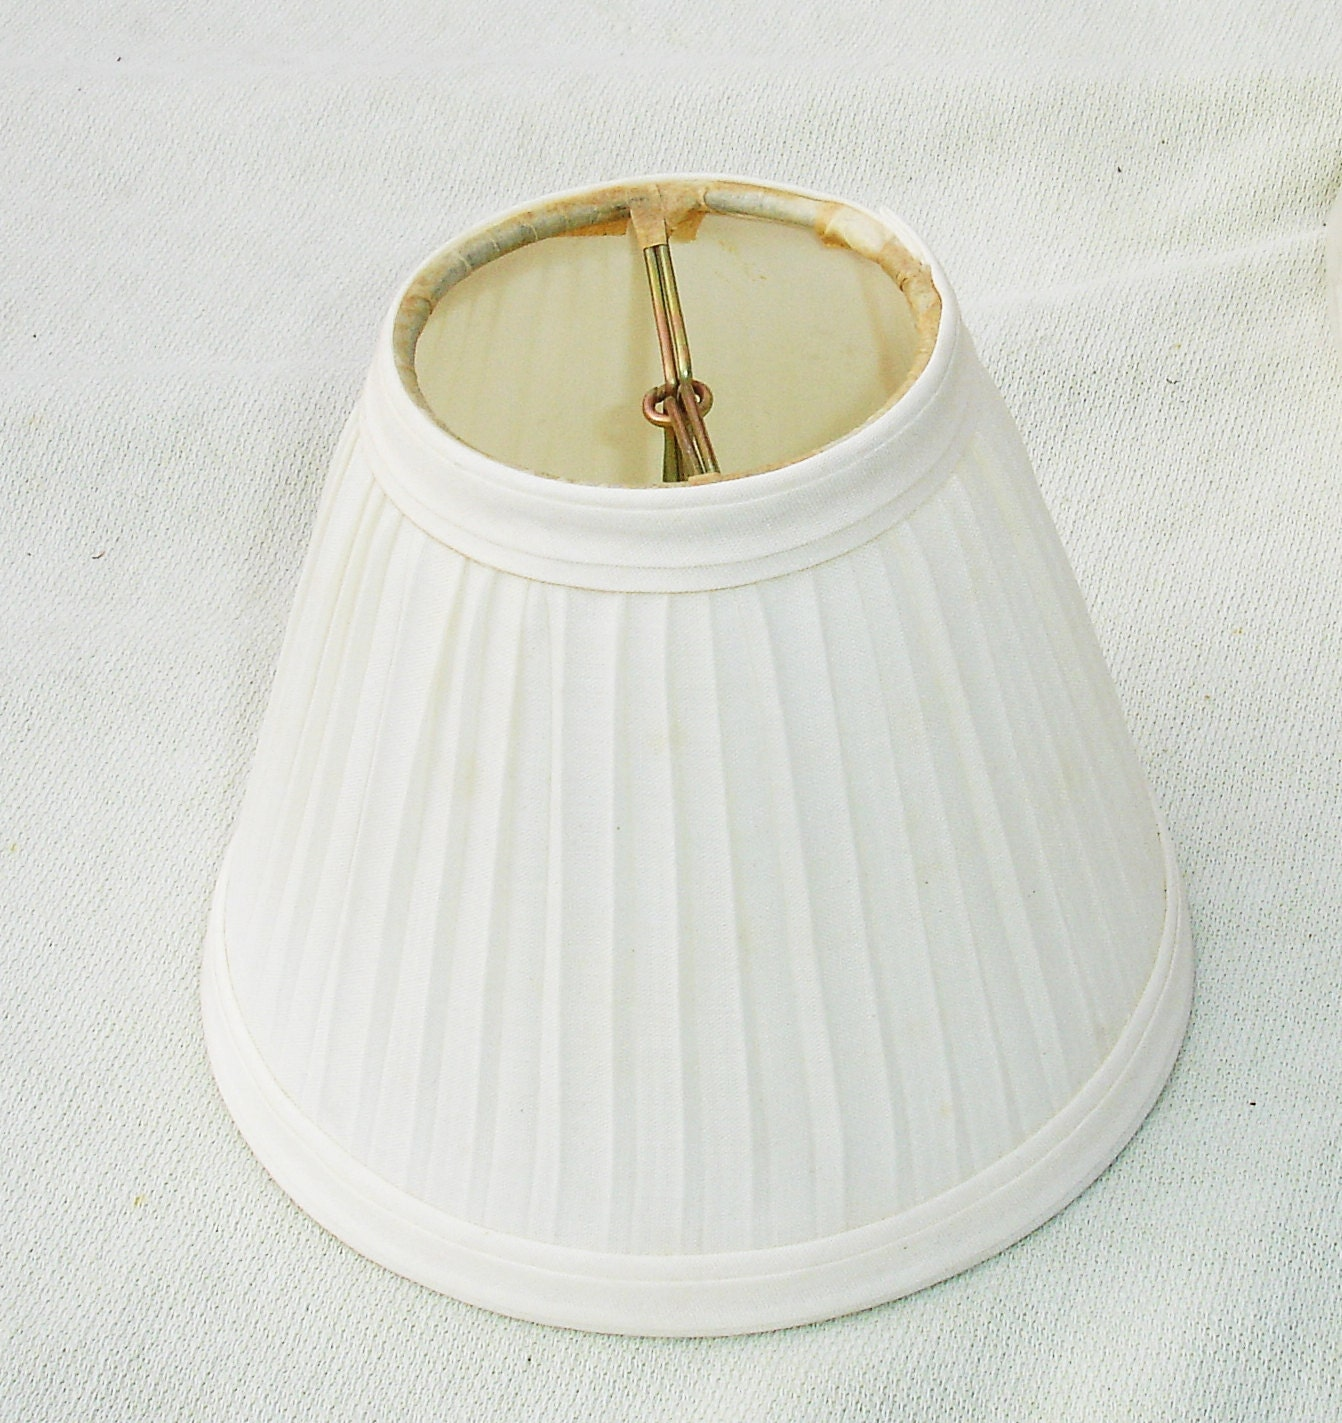 small white ruffled lamp shade 4 inch by 5 inch fits on. Black Bedroom Furniture Sets. Home Design Ideas